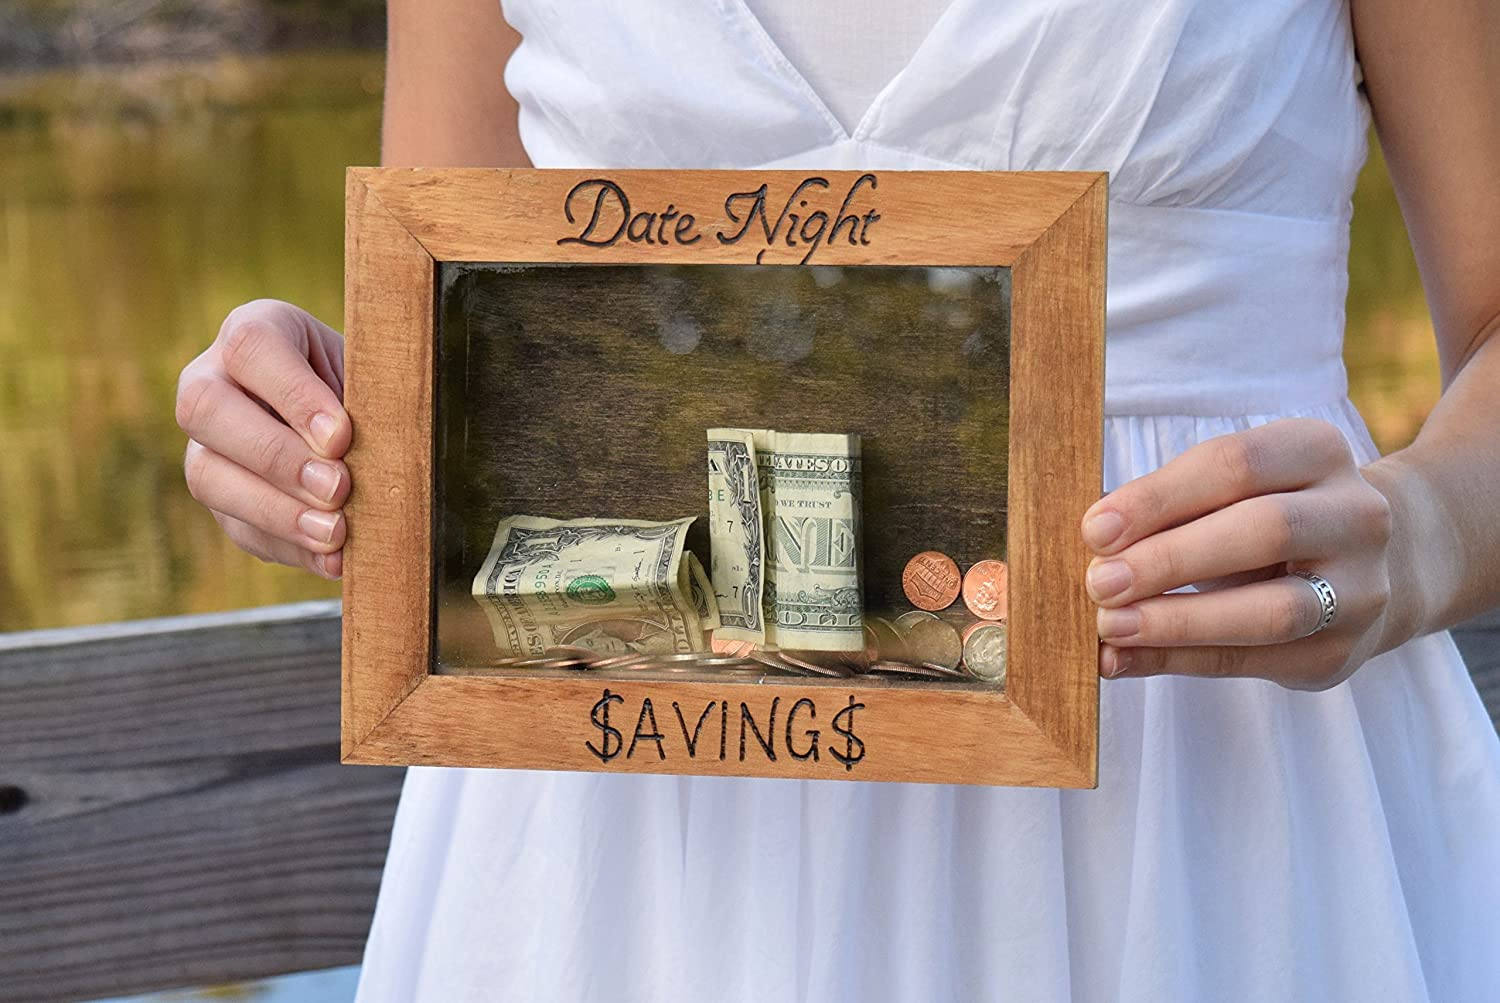 Date Night - Date Night Savings - Piggy Bank - Date Night Jar - Personalized Gift - Shower Gift - Date Night Ideas - Date Night Jar - Picture Frame - Shadow Box